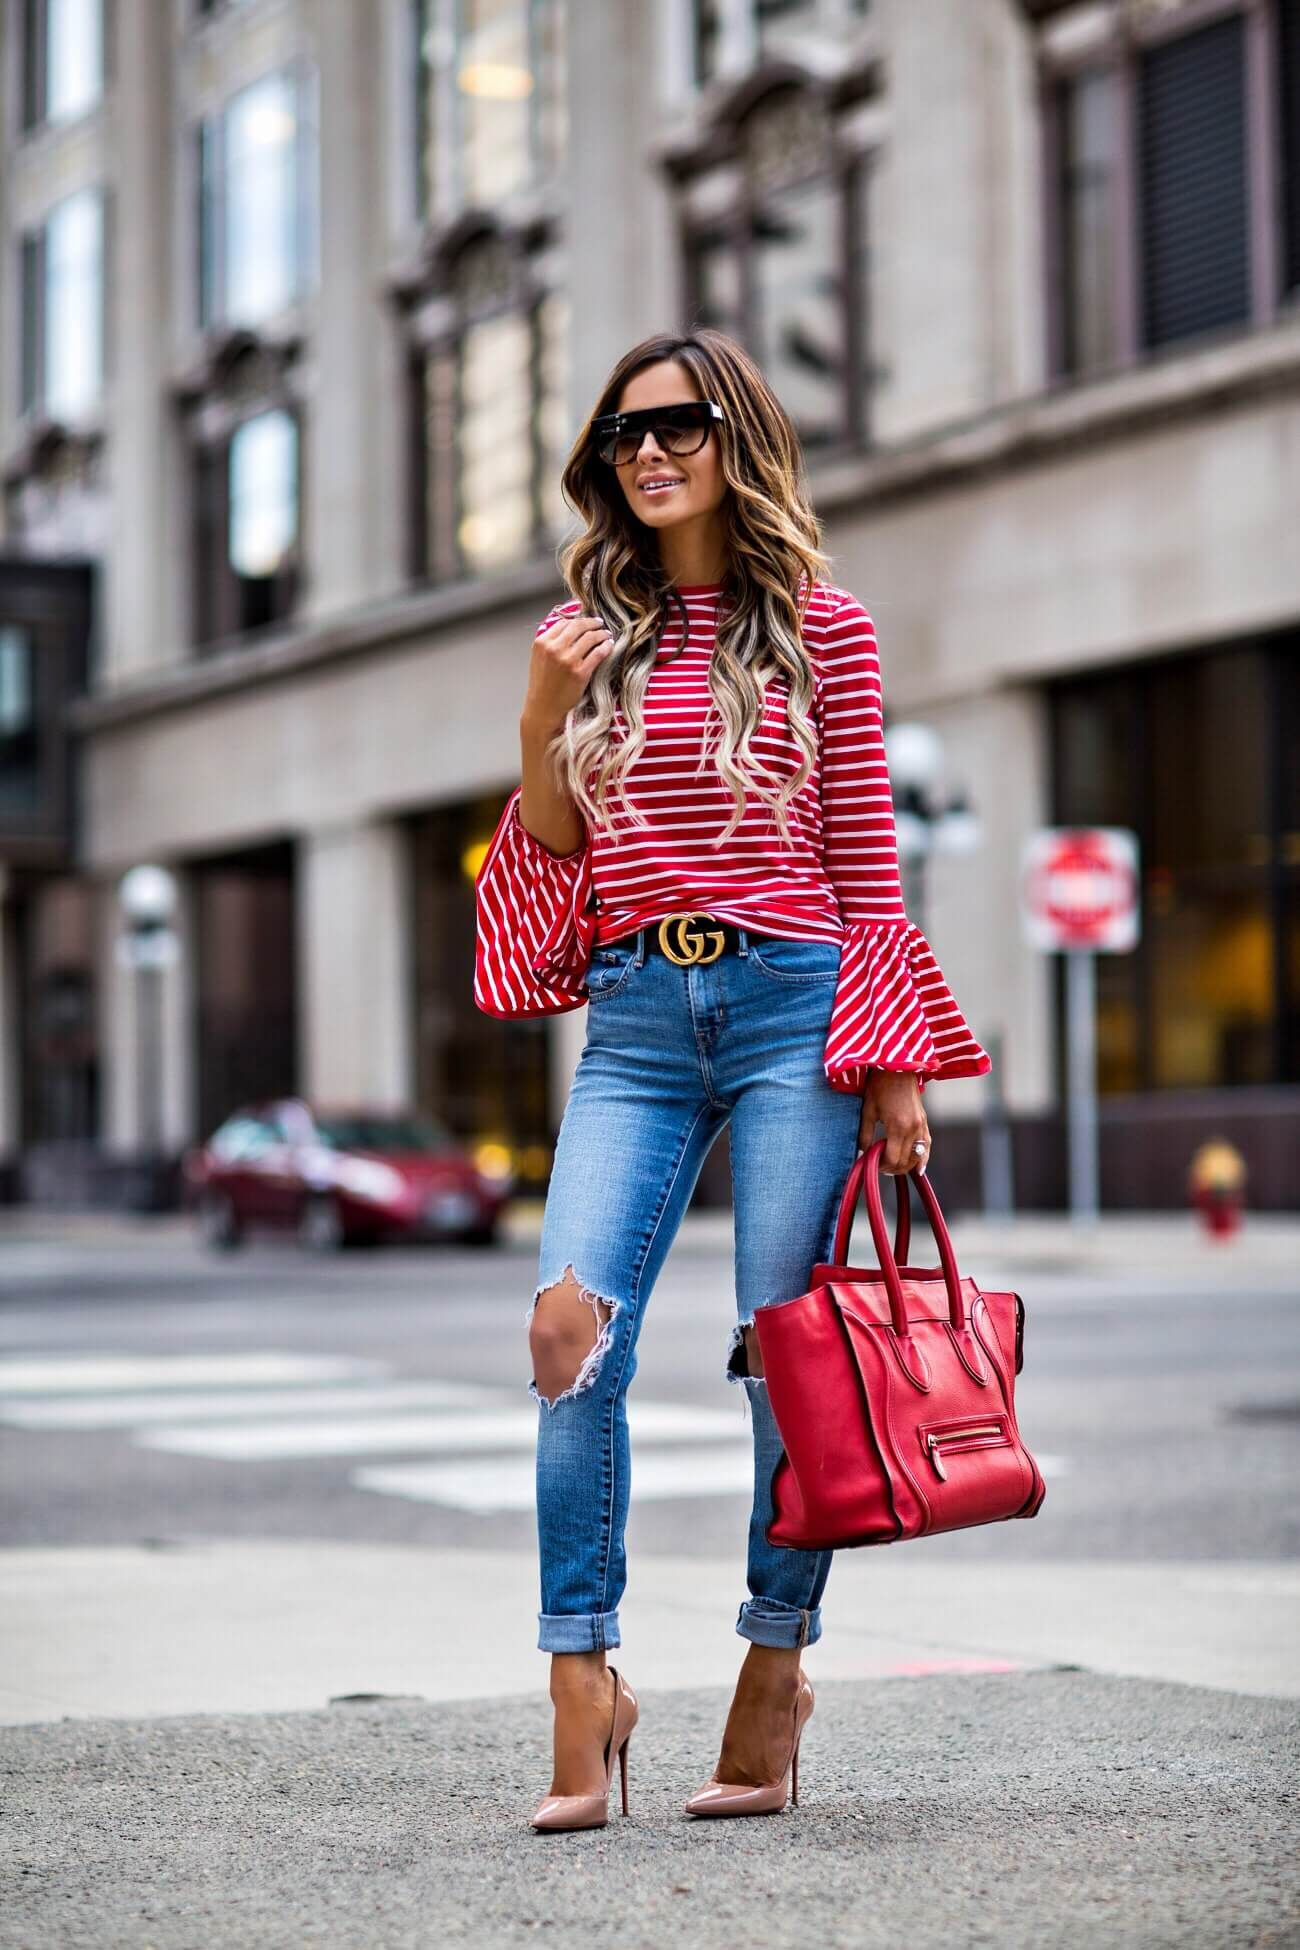 mn fashion blogger mia mia mine wearing a red striped top and levi's distressed jeans from shopbop